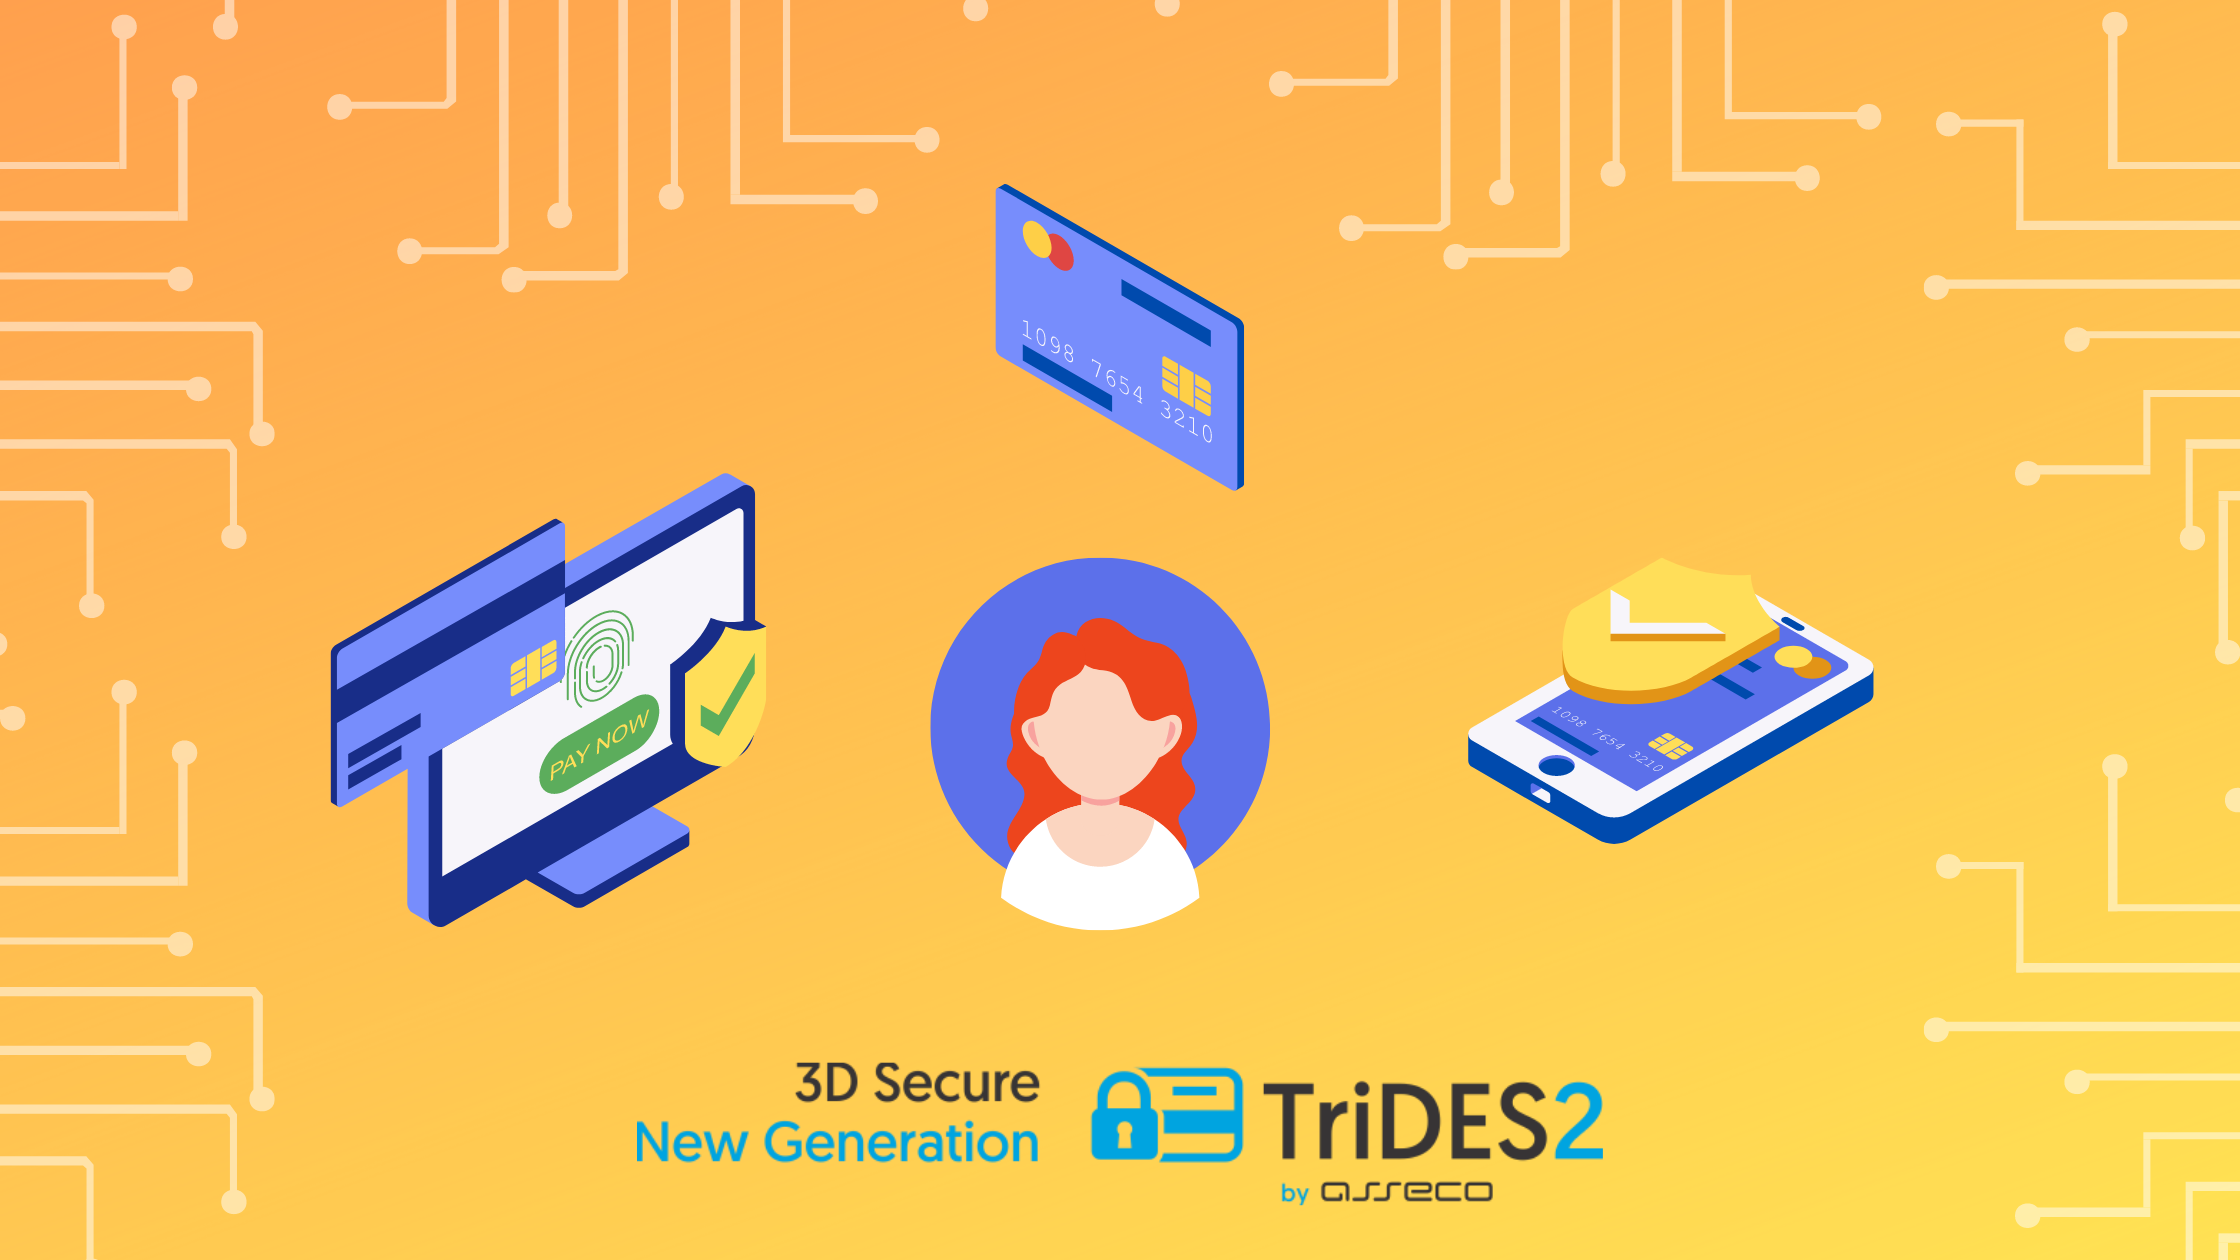 3D Secure User Experience - TriDES2 by Asseco